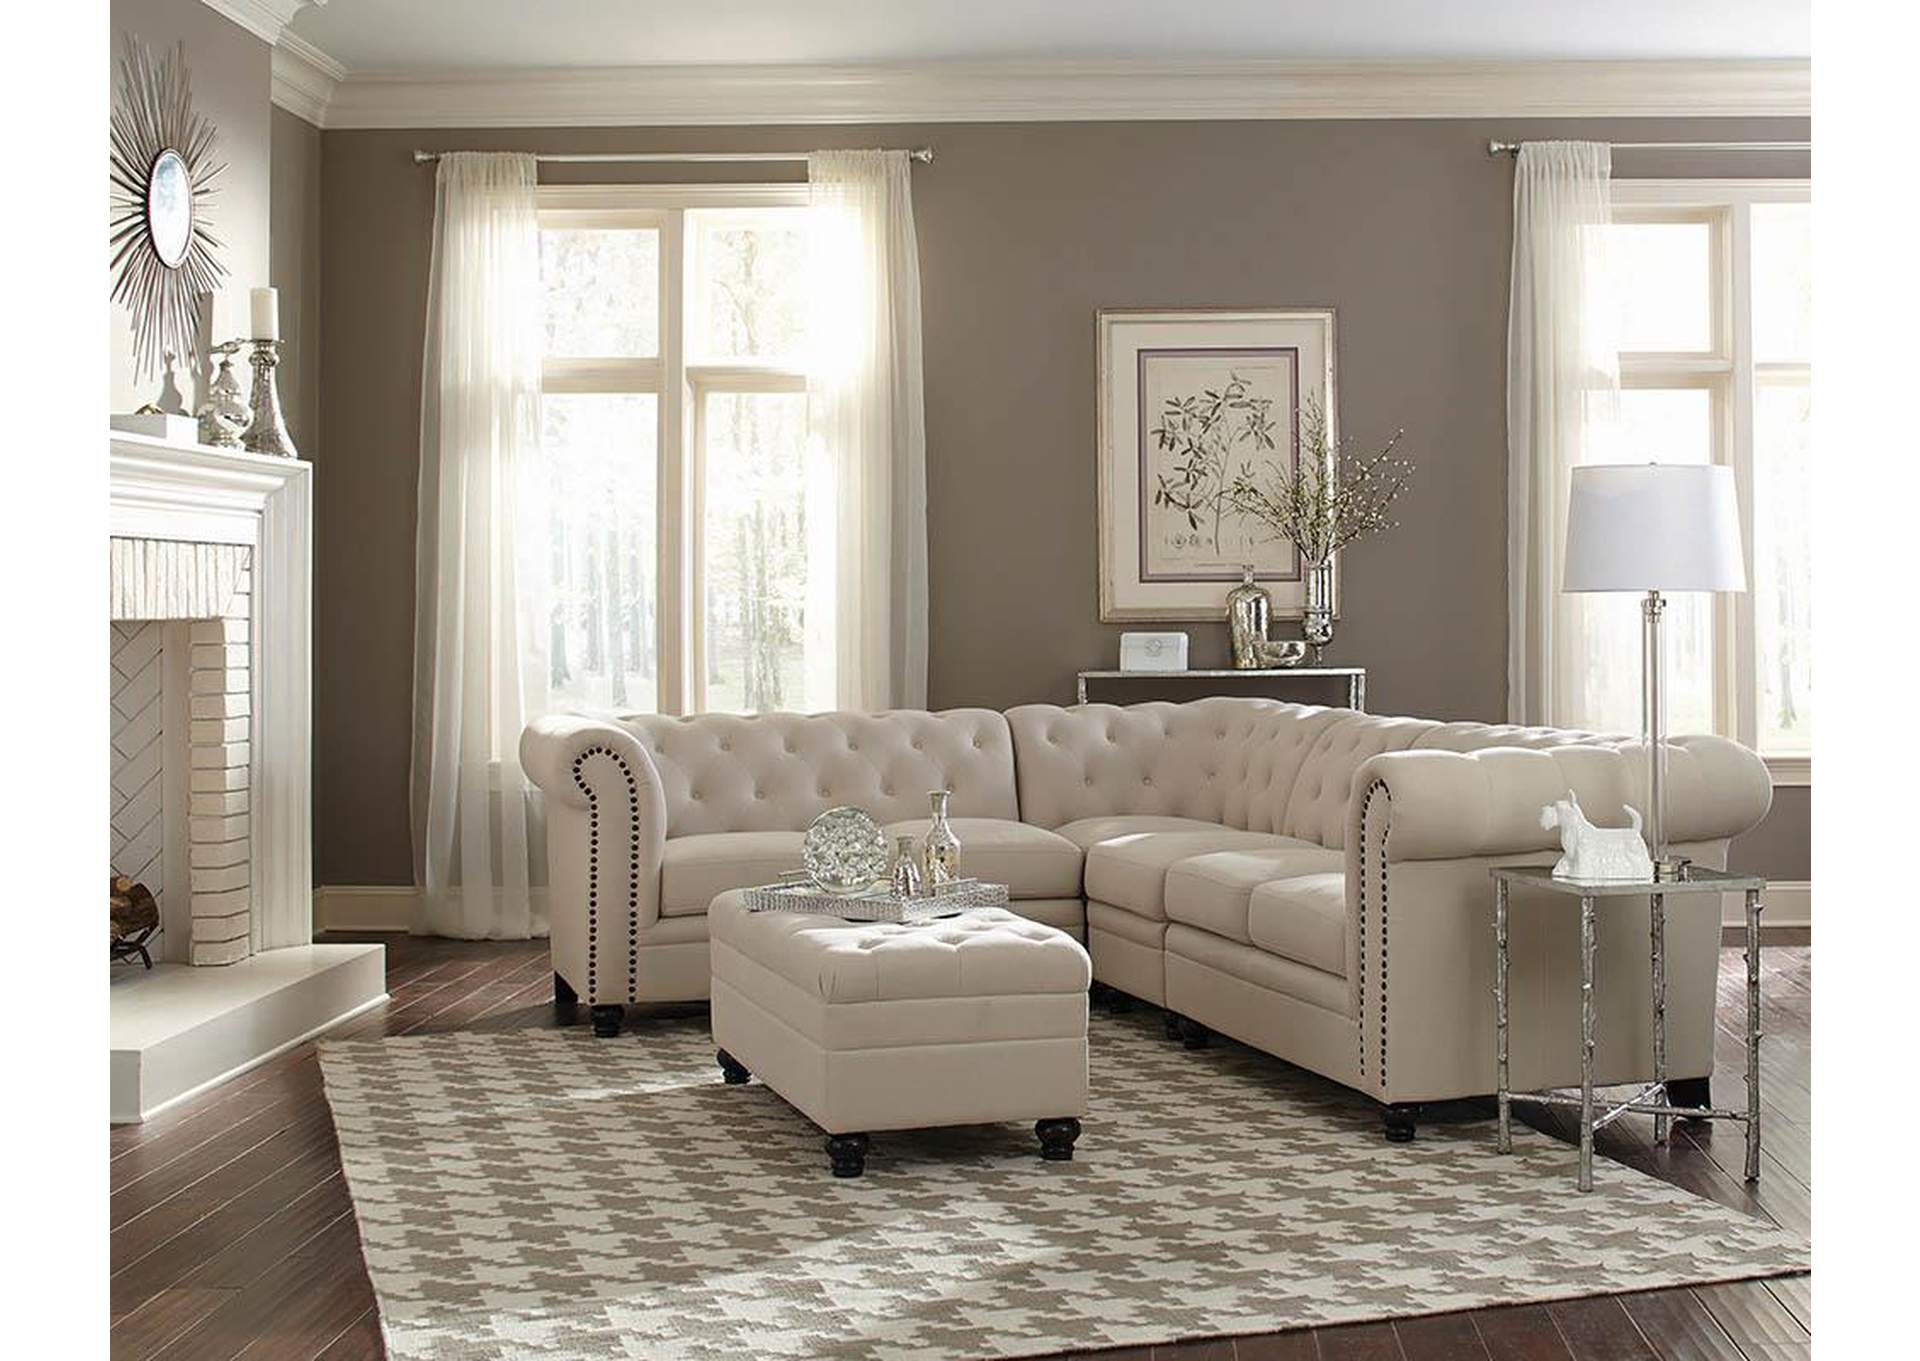 Roy Oatmeal Sectional,Coaster Furniture